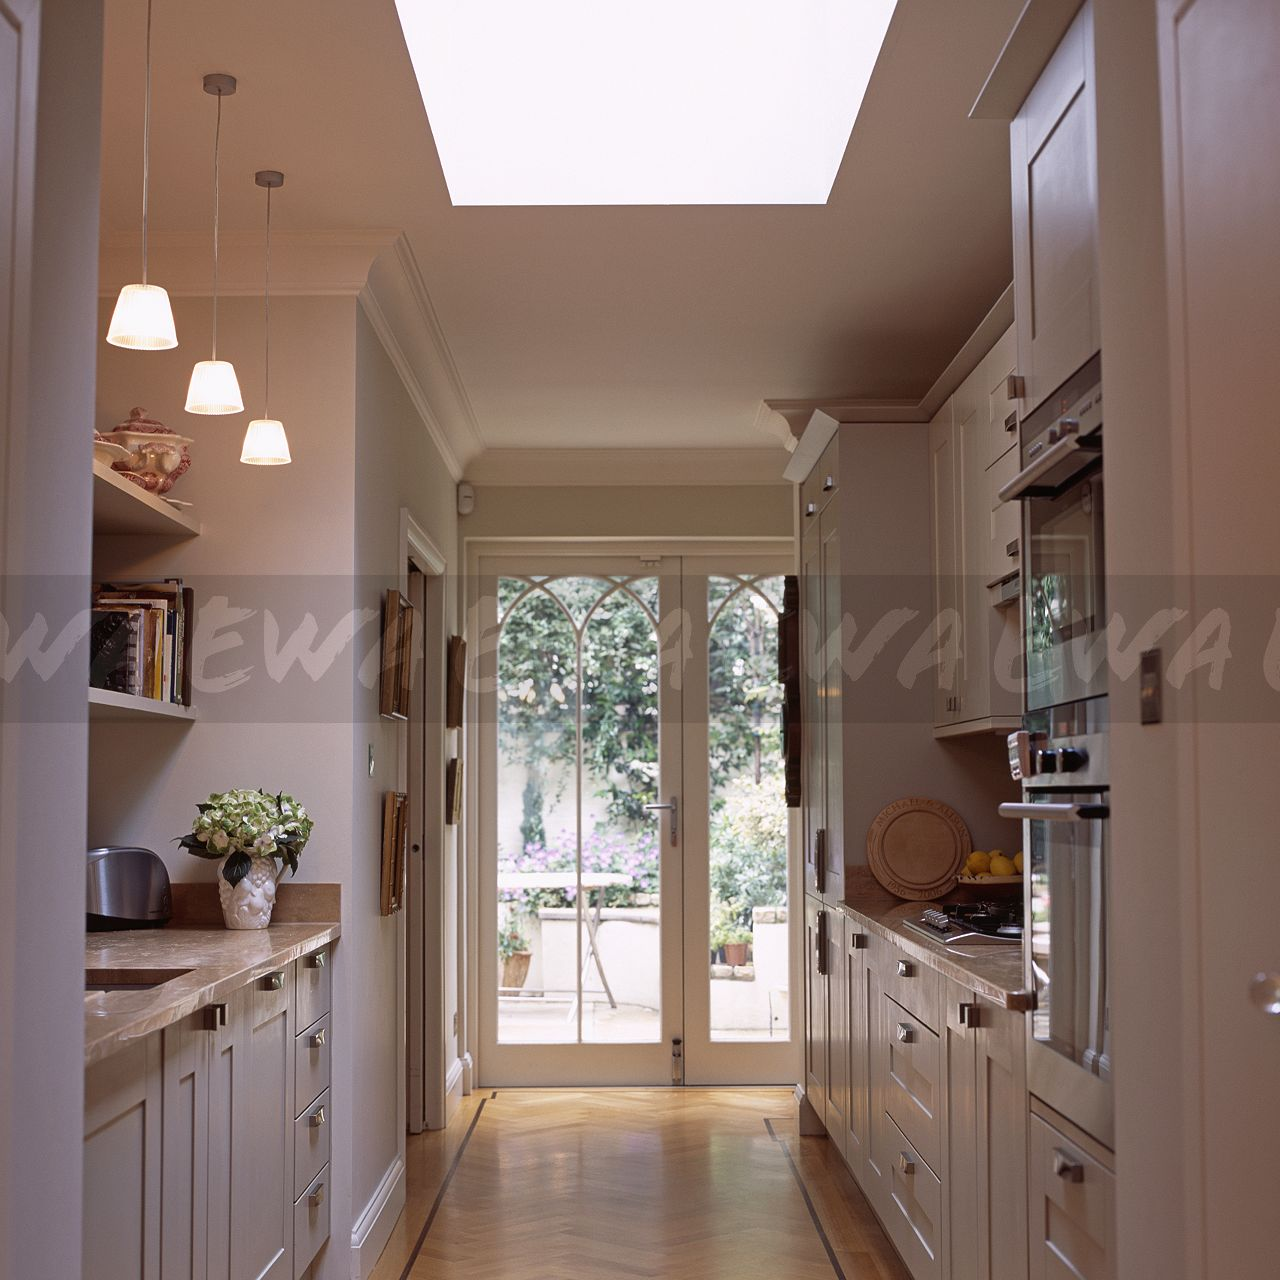 Image: Pendant Lights In White Galley Kitchen Extension With Patio Doors